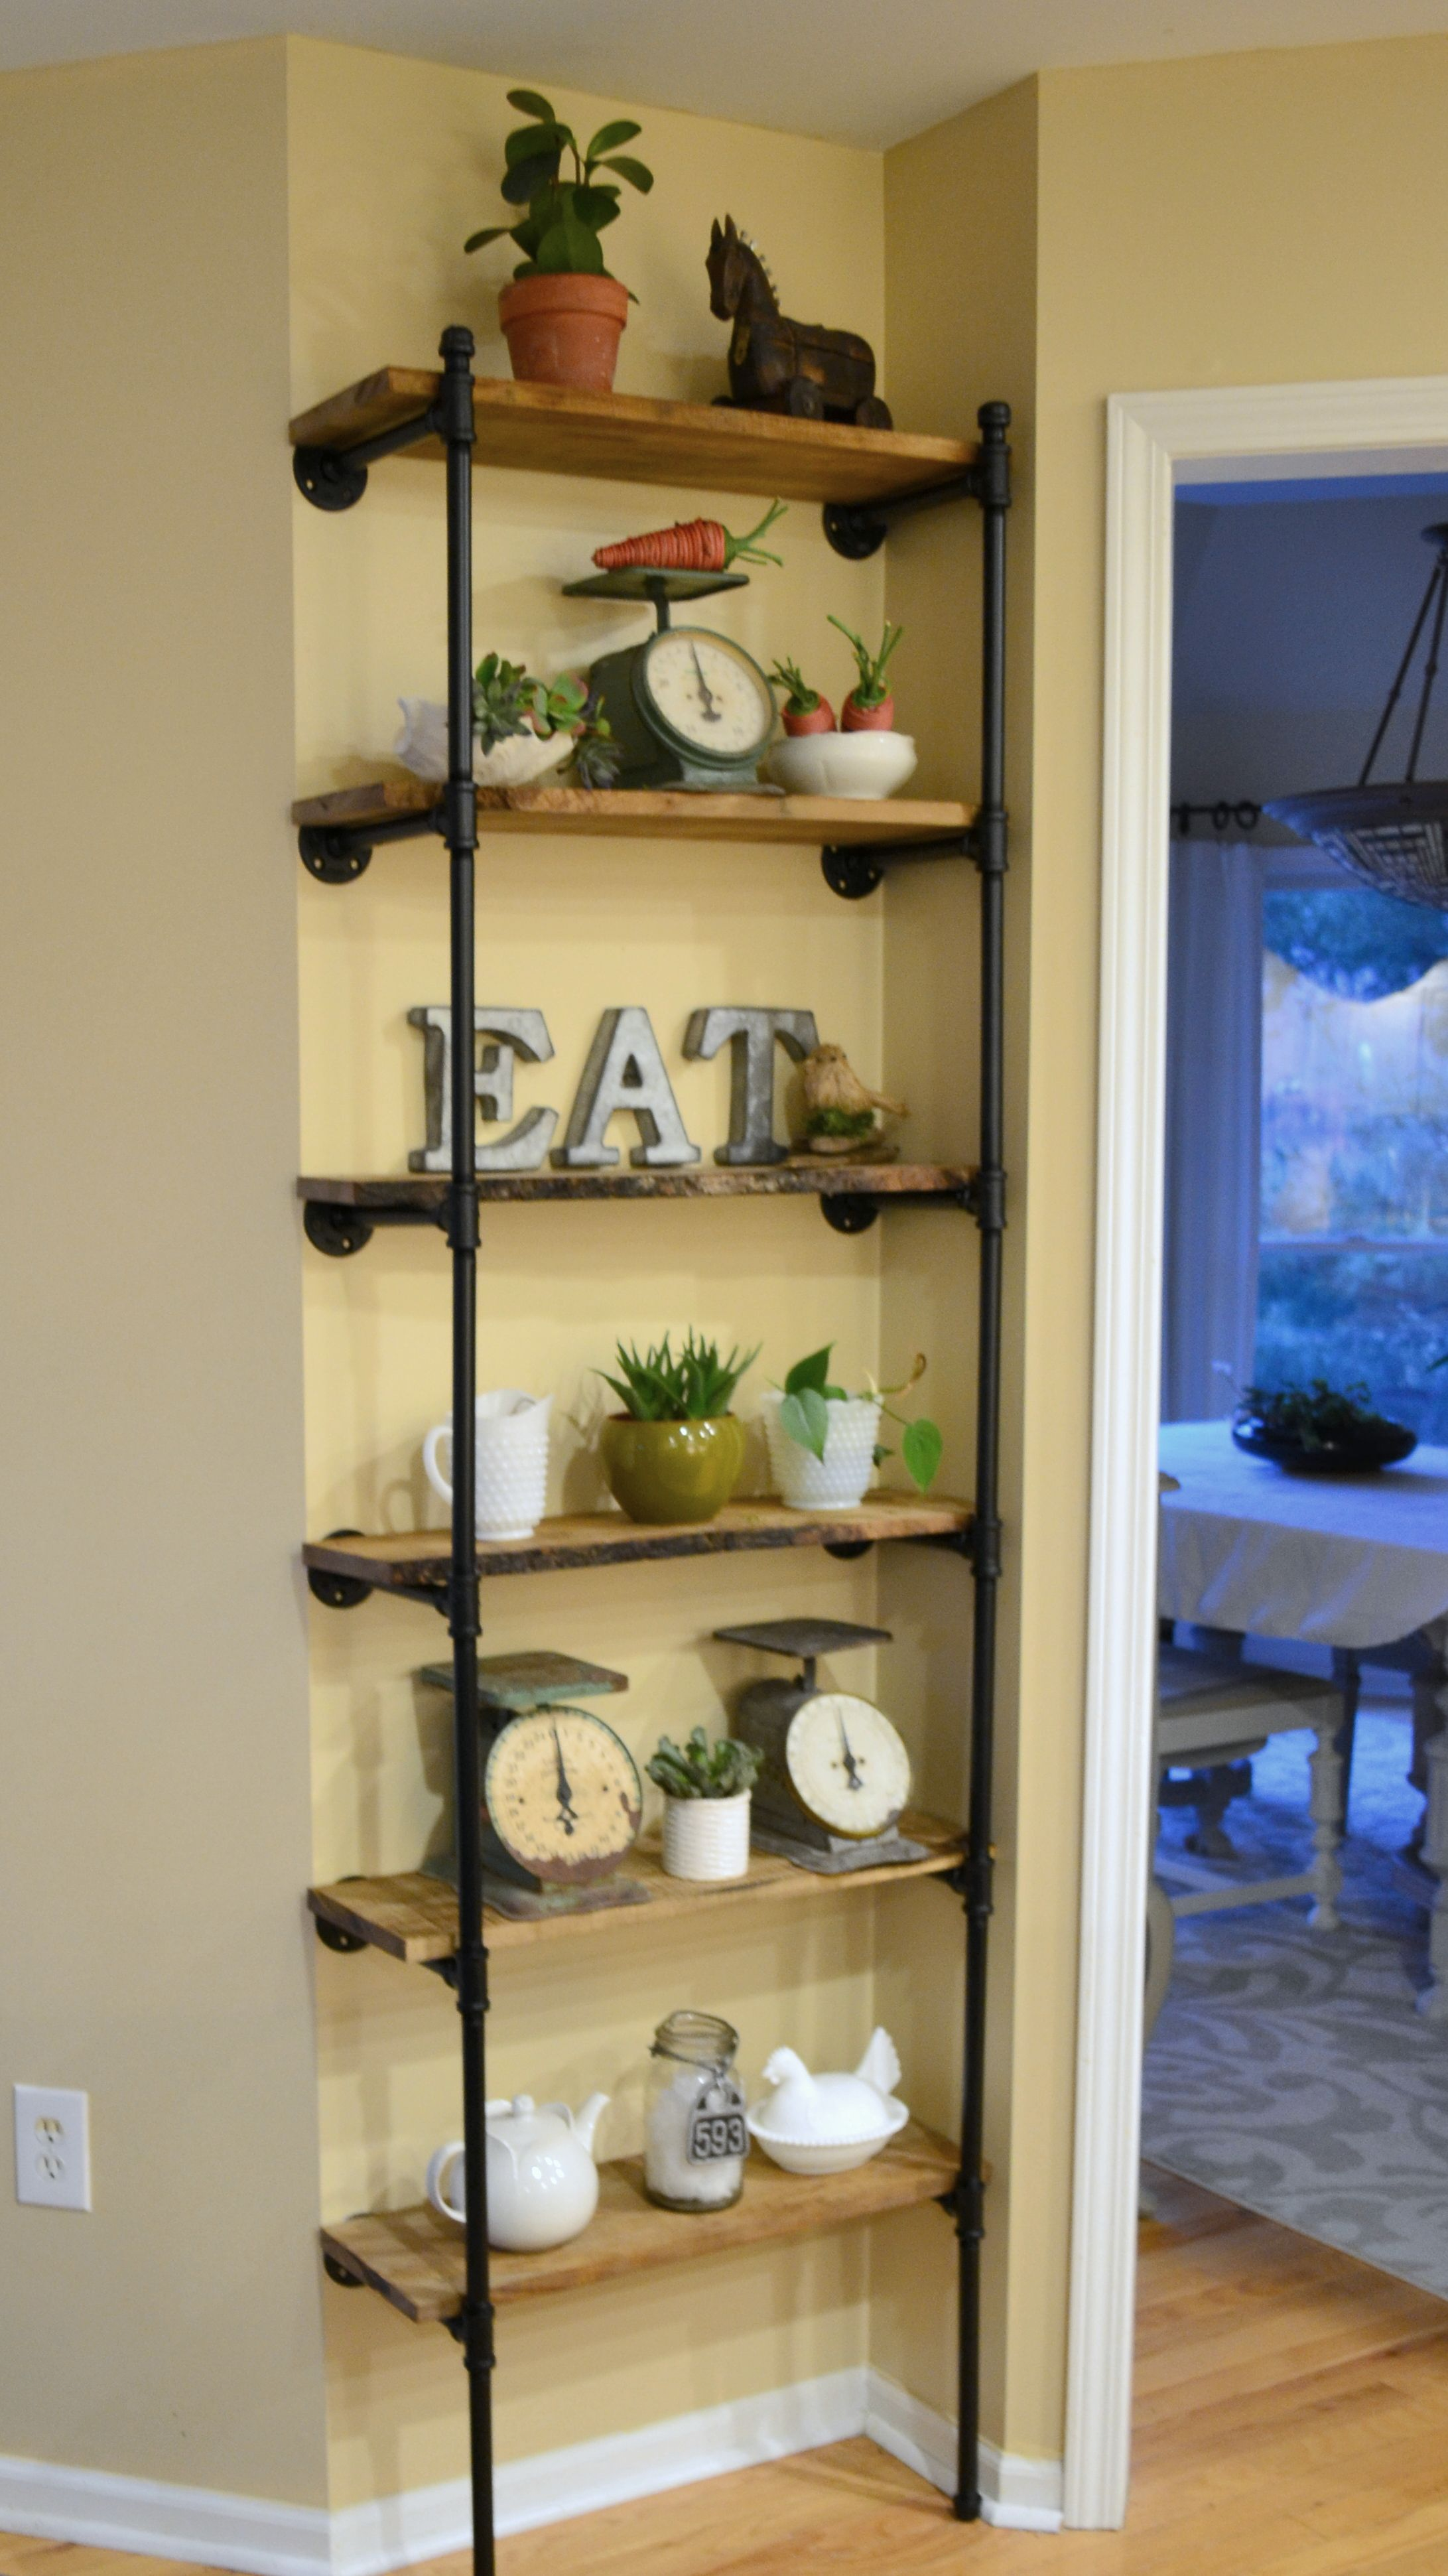 Gas pipe shelving u a few more kitchen updates aby board